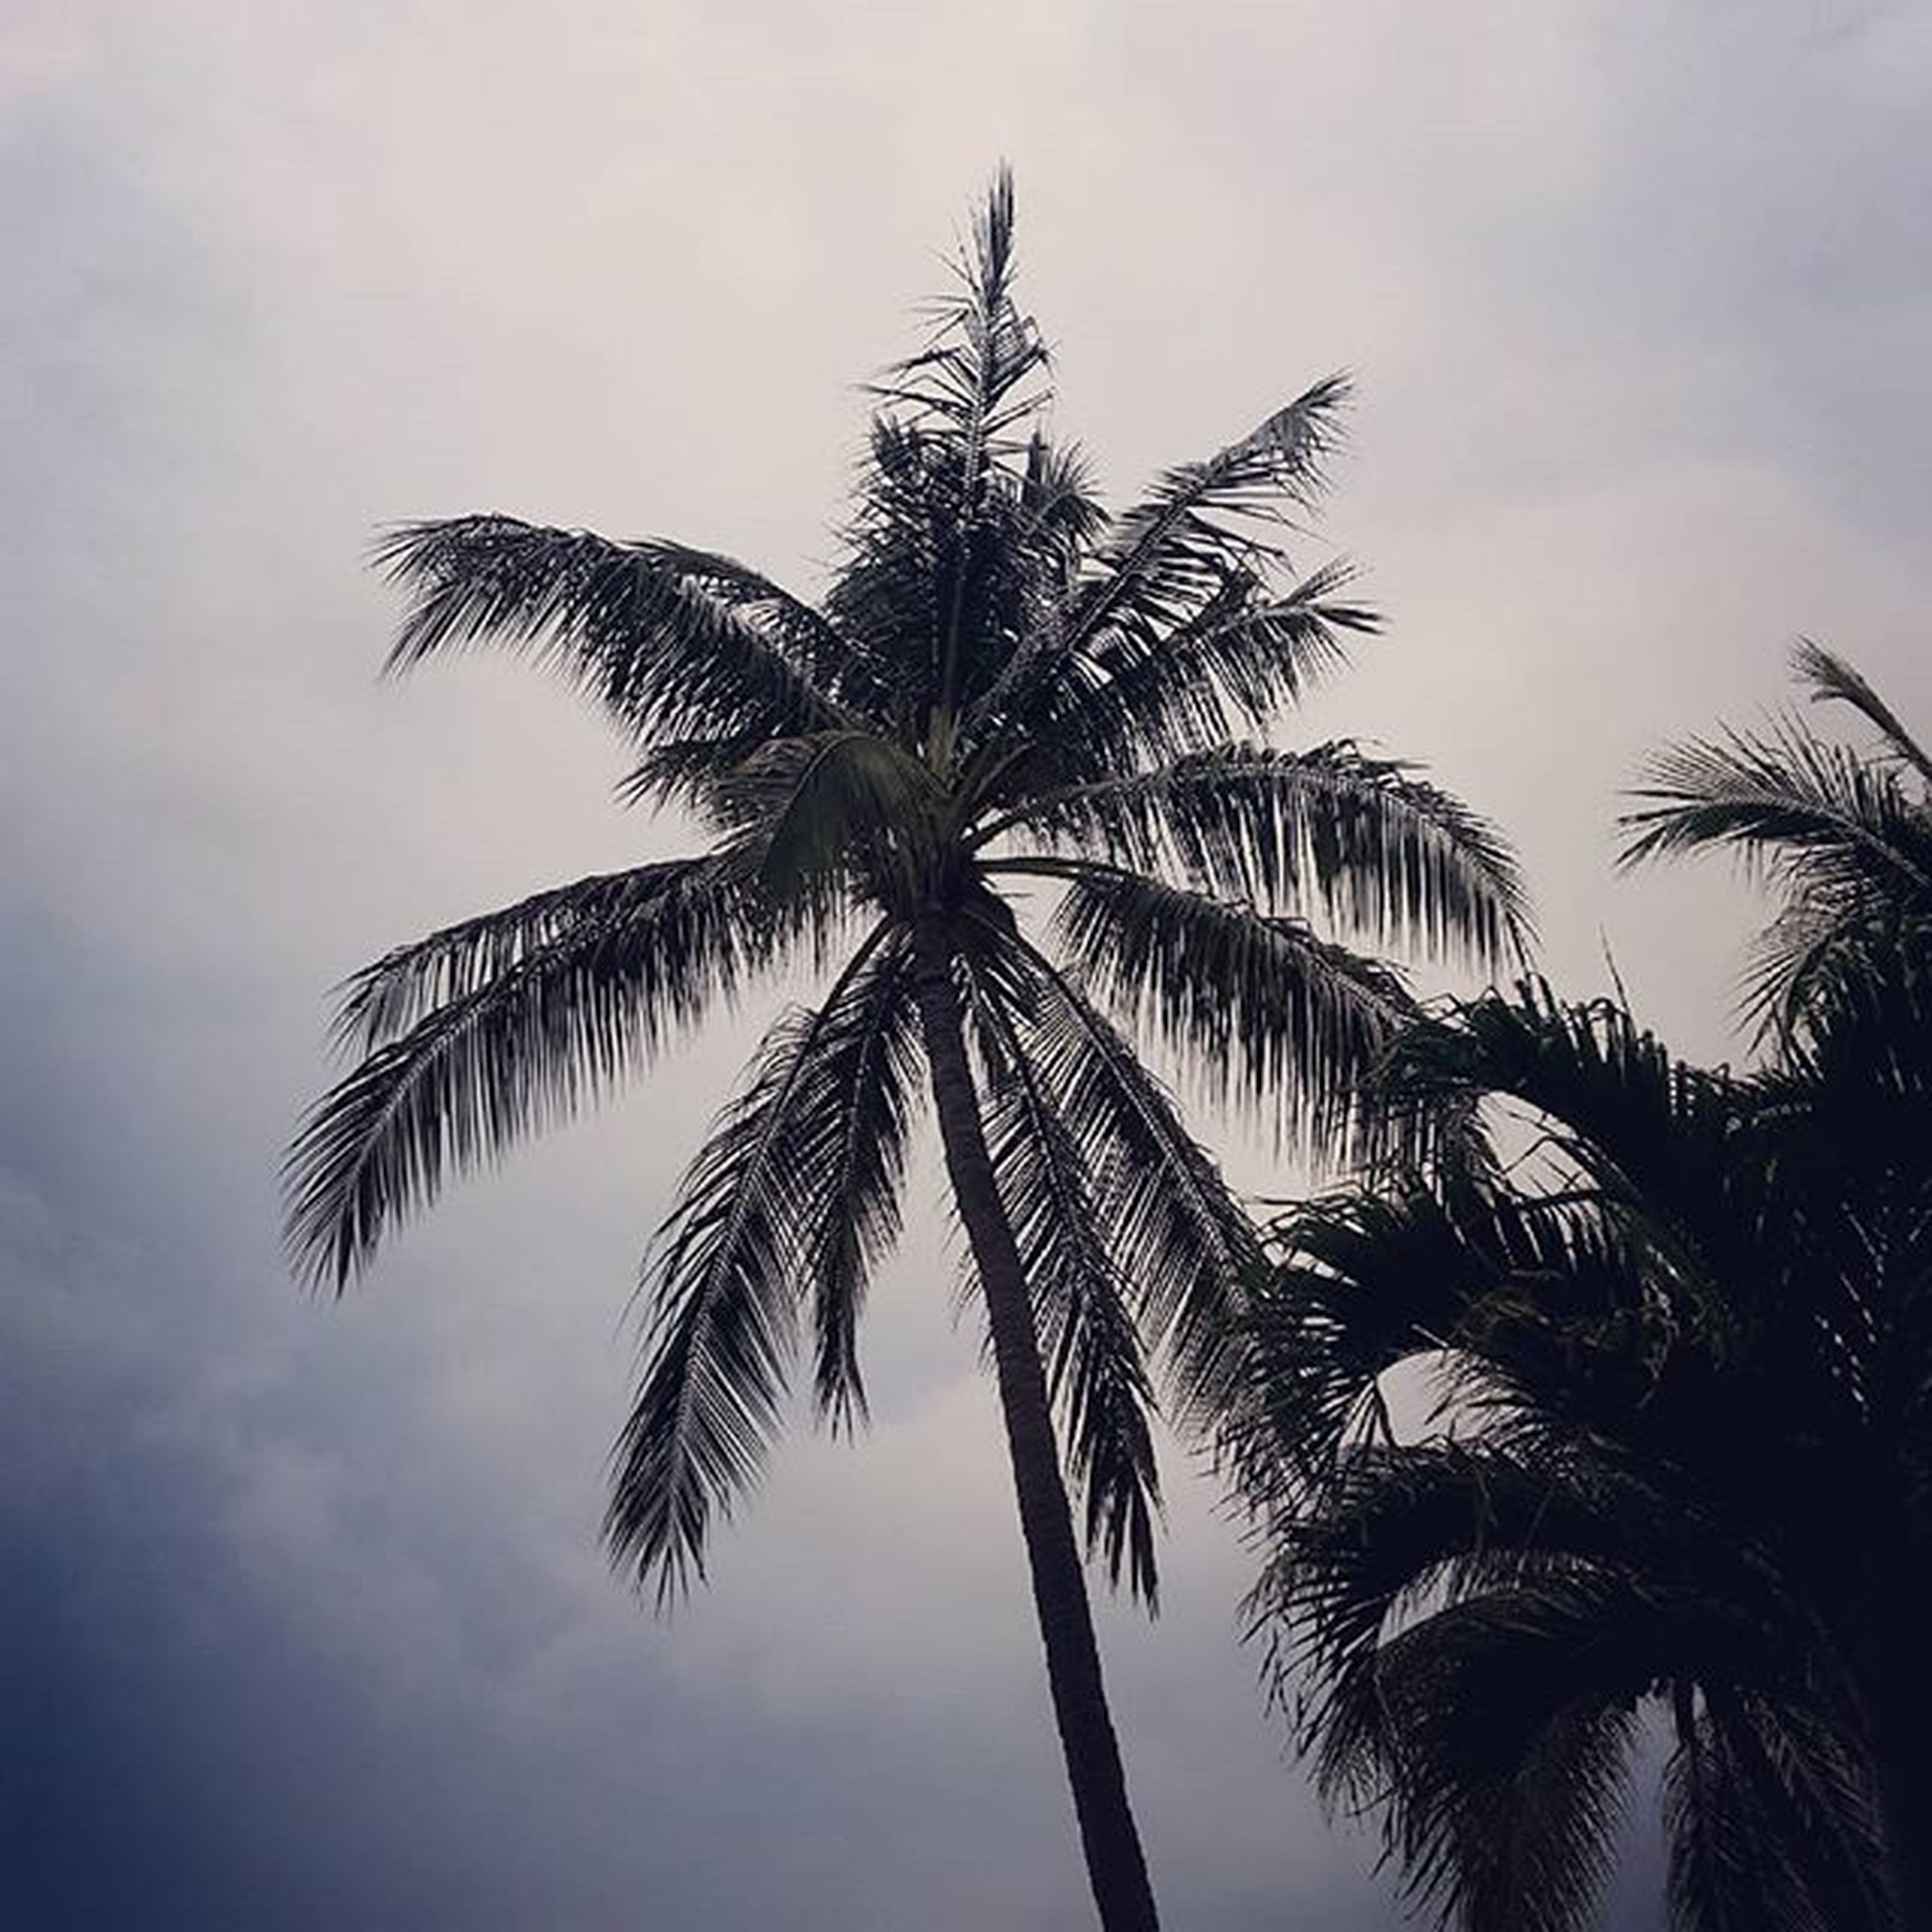 palm tree, low angle view, tree, sky, growth, tranquility, tall - high, coconut palm tree, palm leaf, nature, beauty in nature, tree trunk, cloud - sky, silhouette, scenics, tranquil scene, palm frond, tropical tree, cloud, outdoors